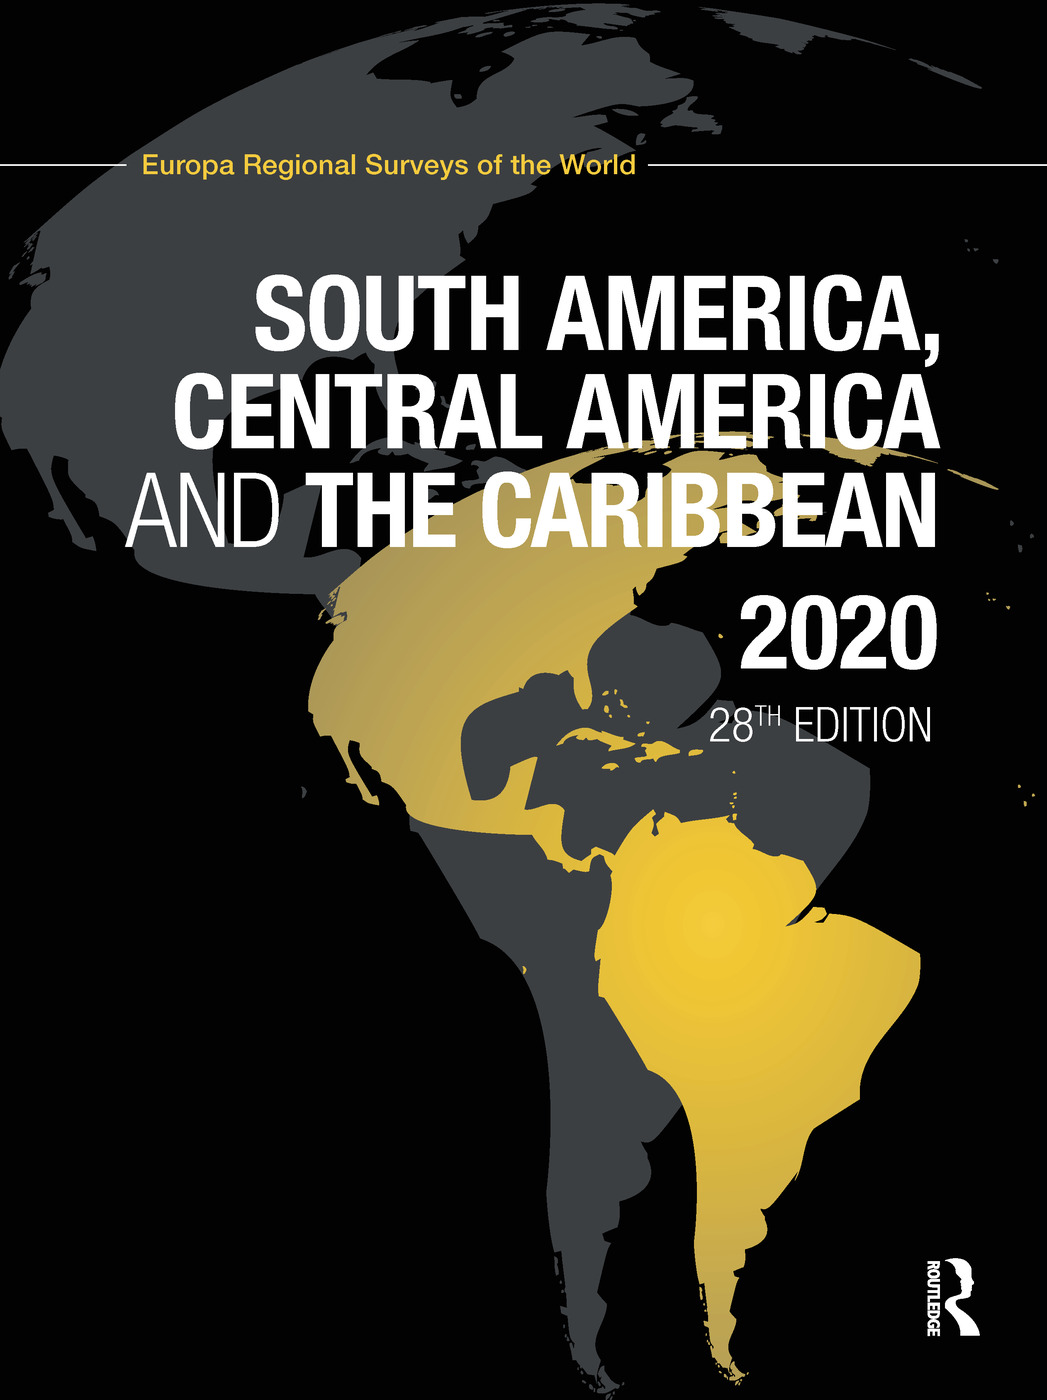 South America, Central America and the Caribbean 2020 book cover